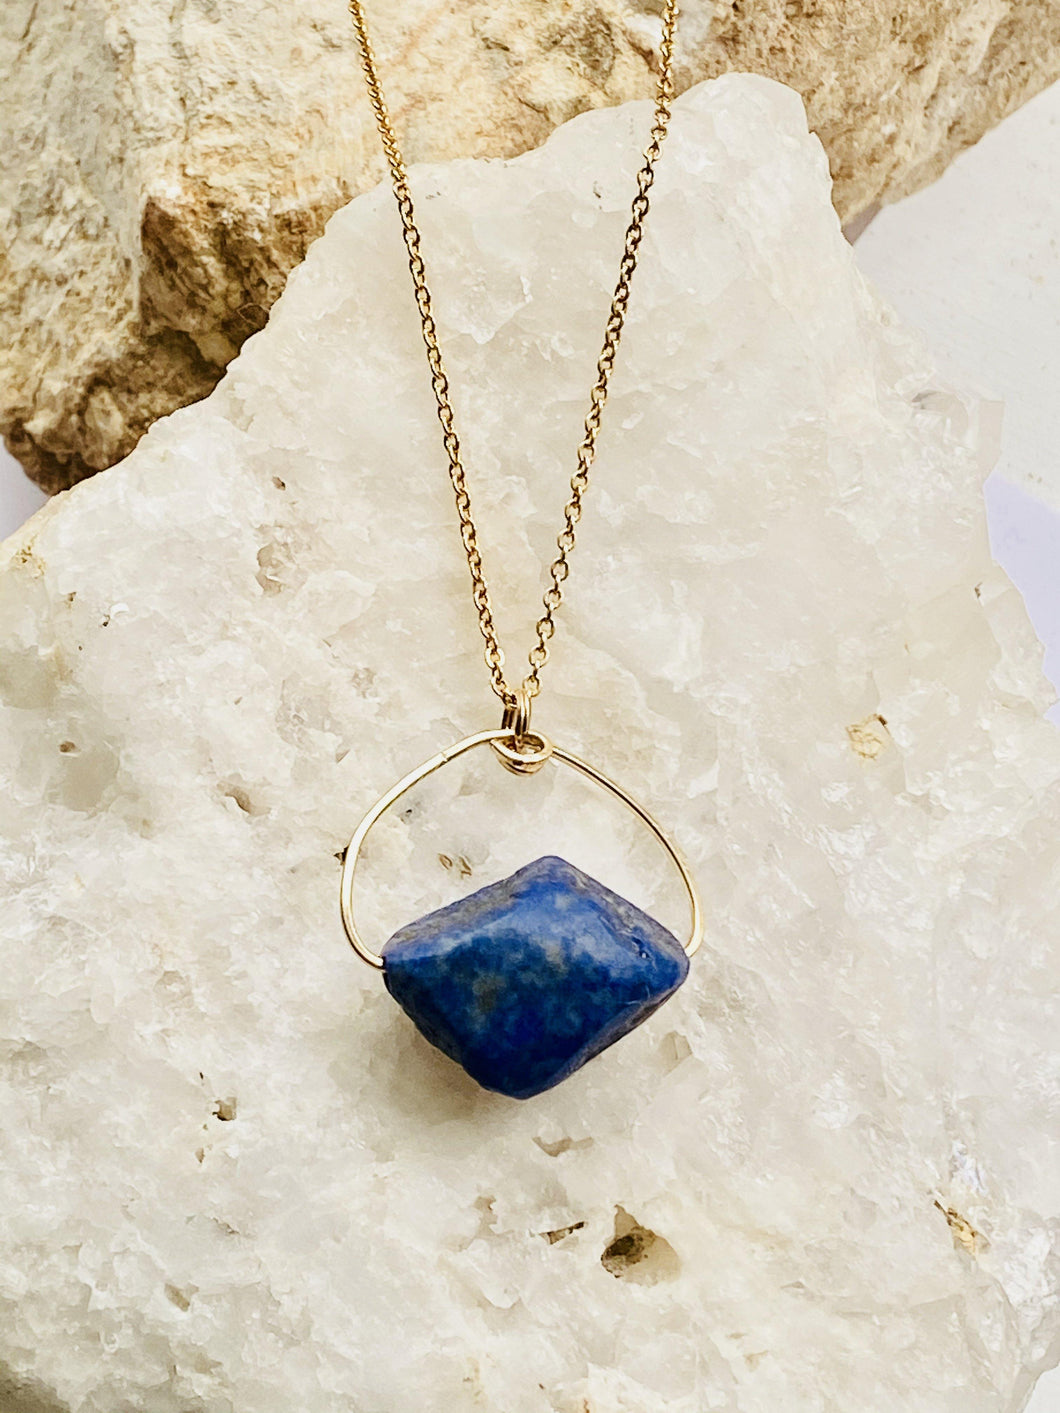 asymmetric natural deep blue stone held on gold plated chain, a handmade bespoke necklace by full moon designs jewellery